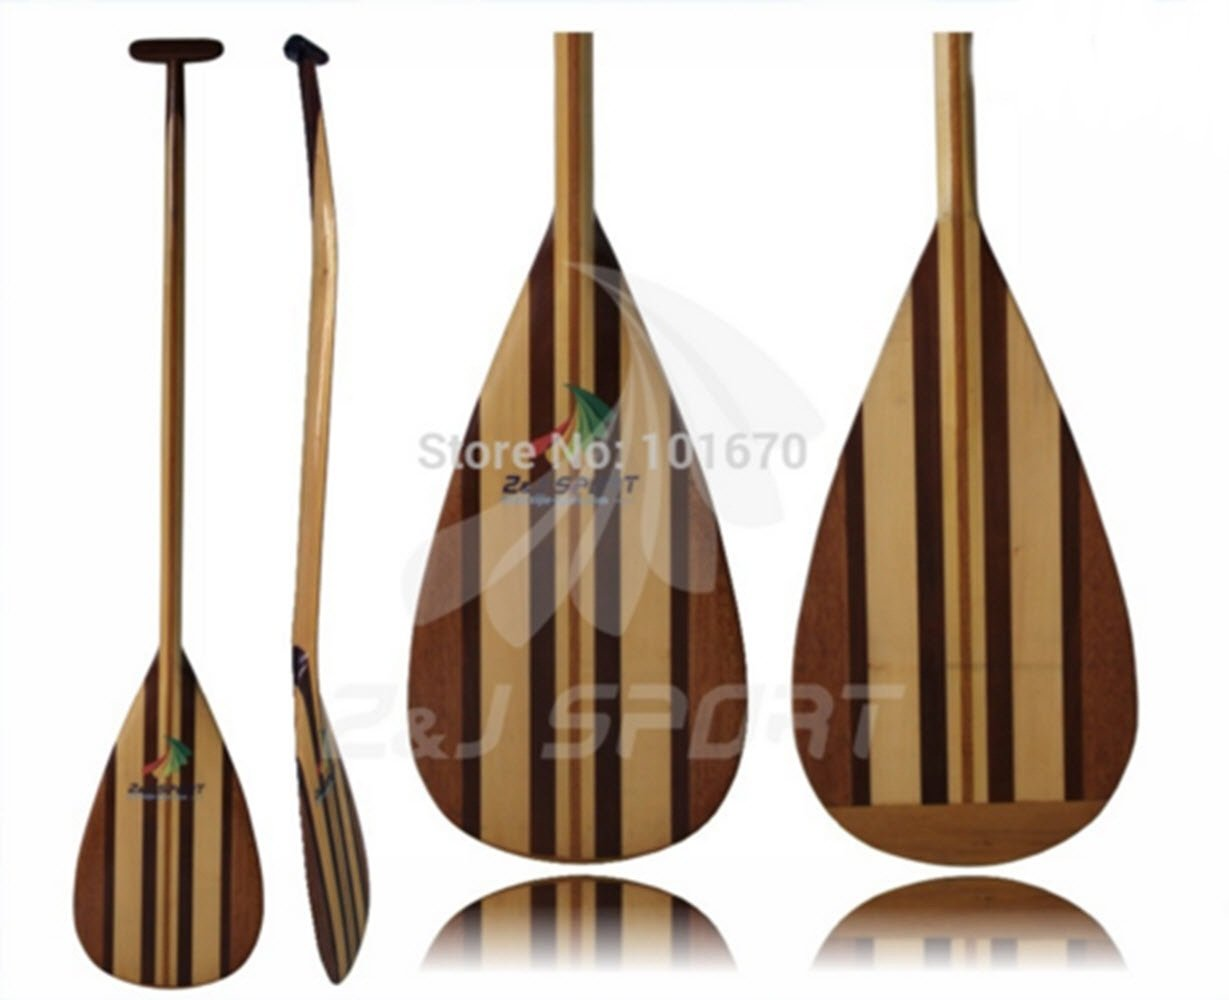 Kayak Paddle Wood wooden outrigger canoe paddle with Fiberglass Reforced